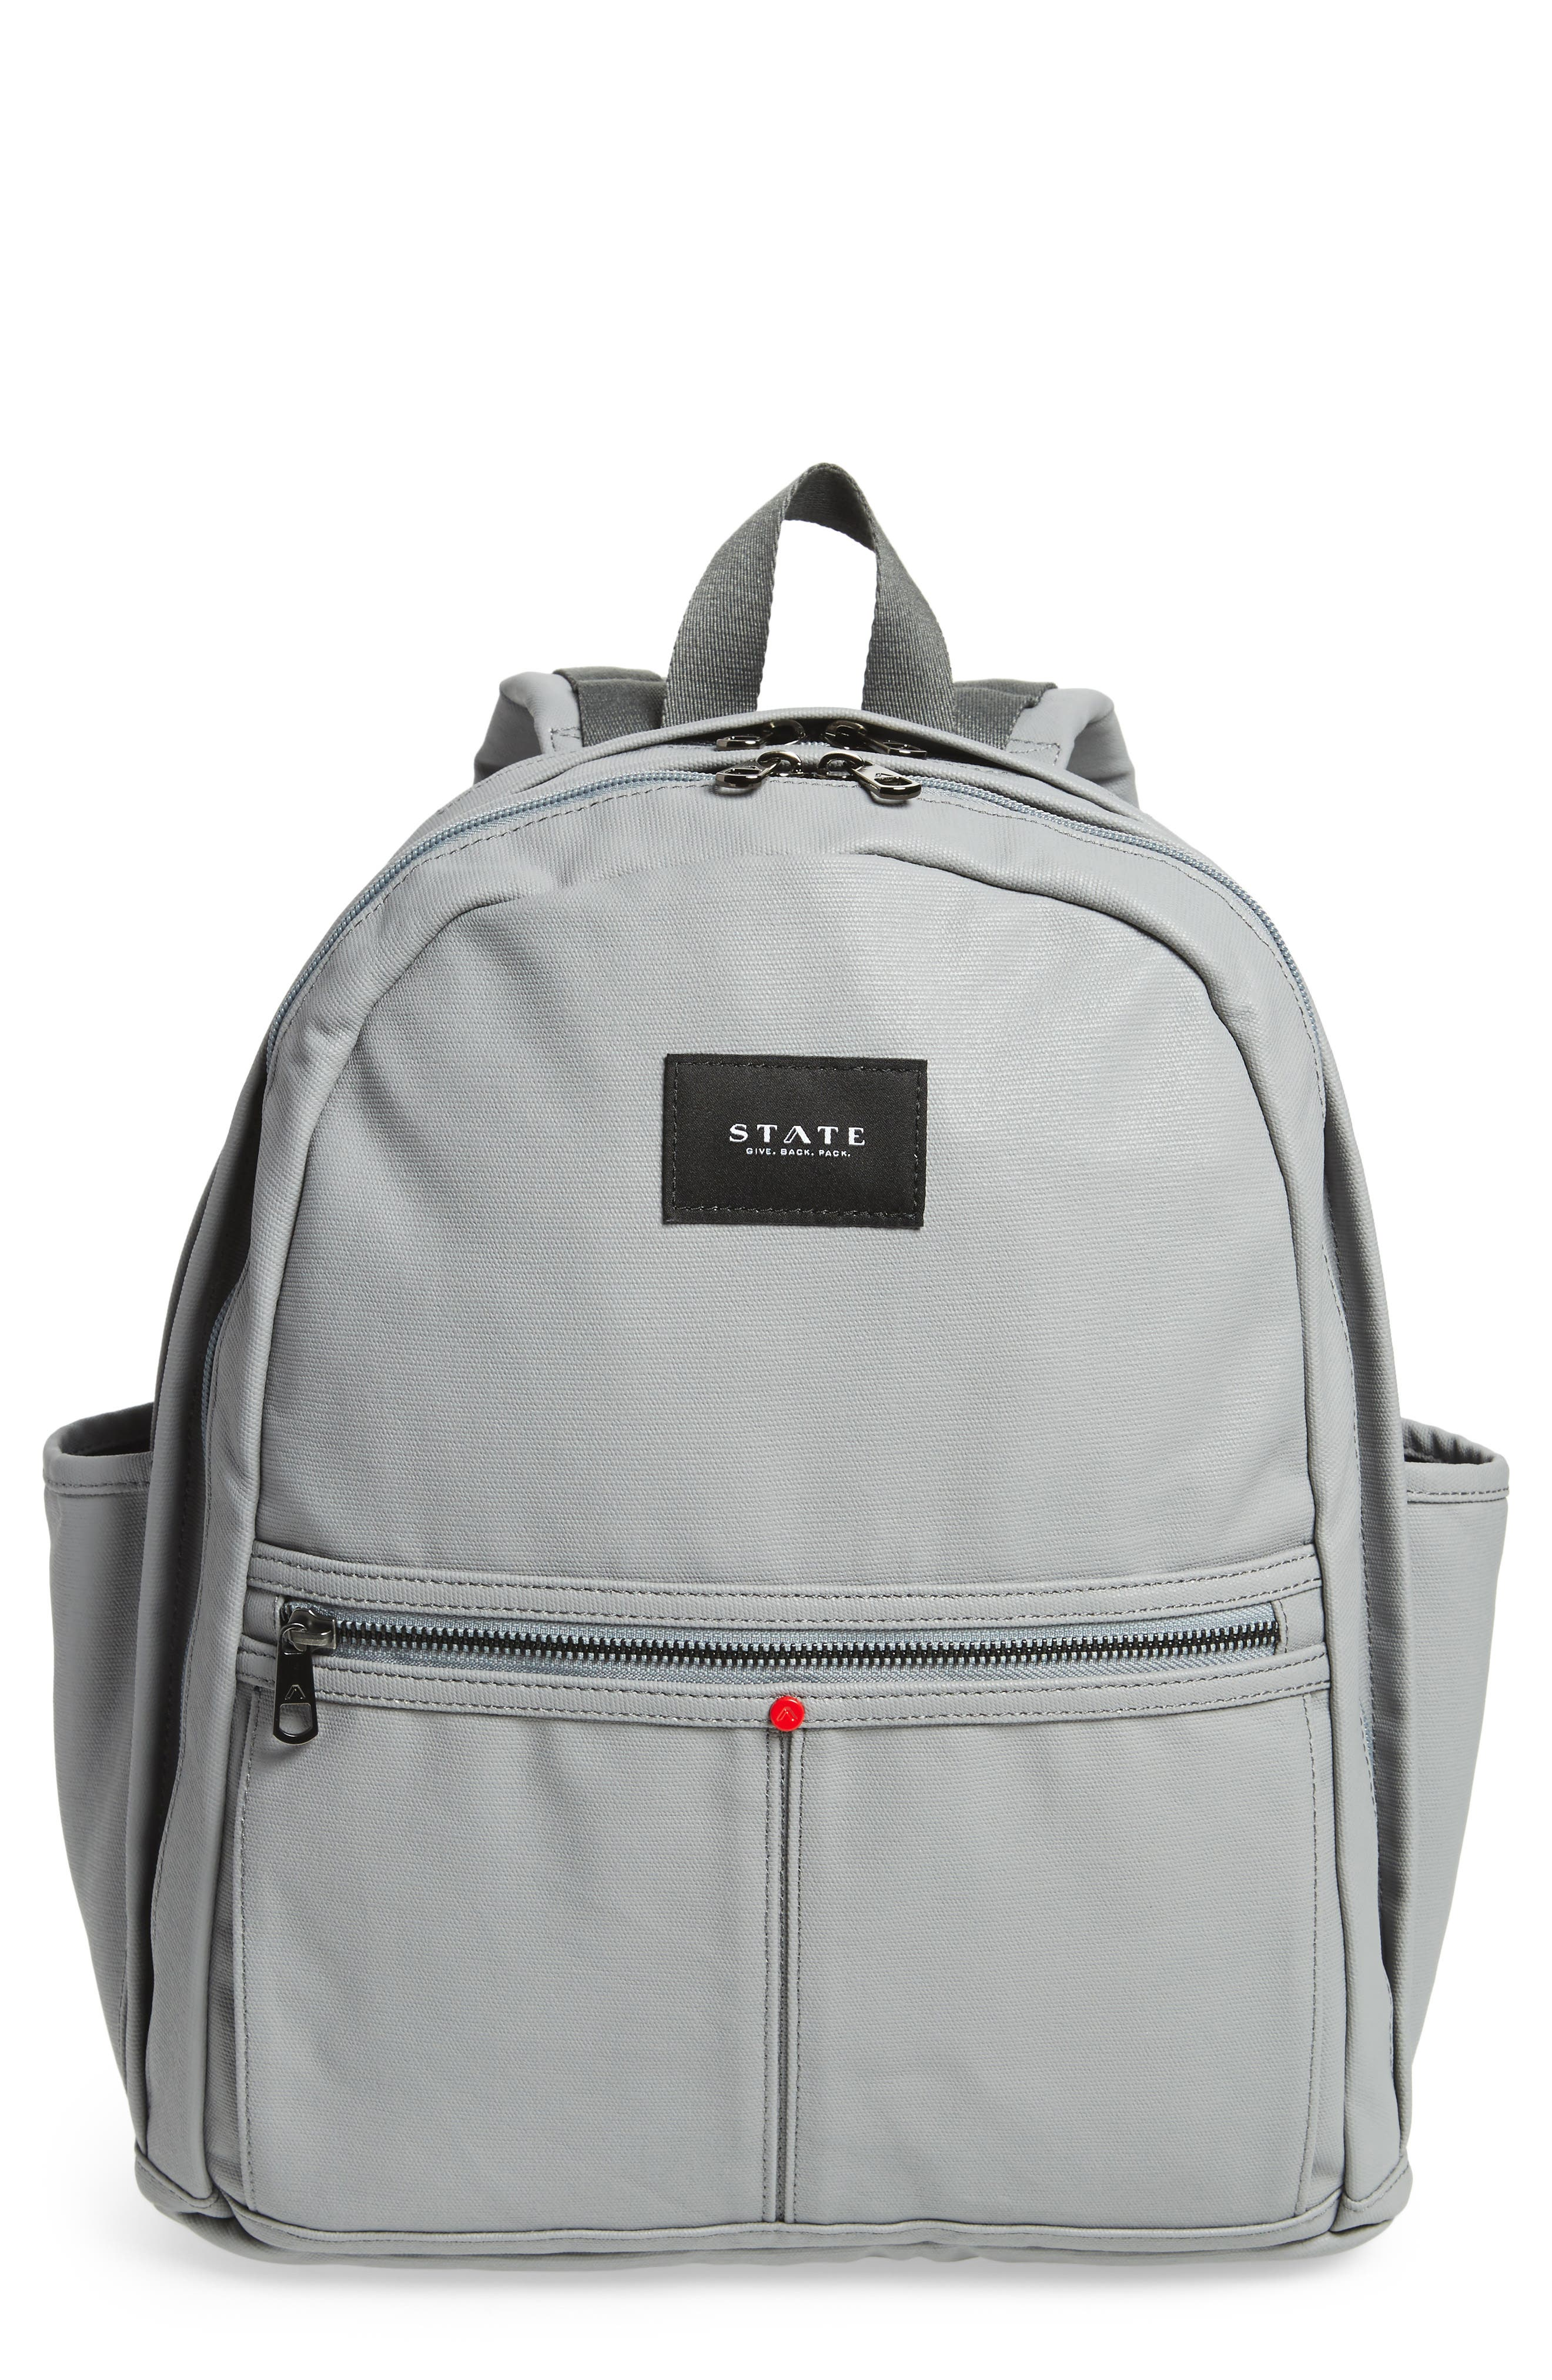 Greenpoint Kent Backpack,                             Main thumbnail 1, color,                             Frost Grey